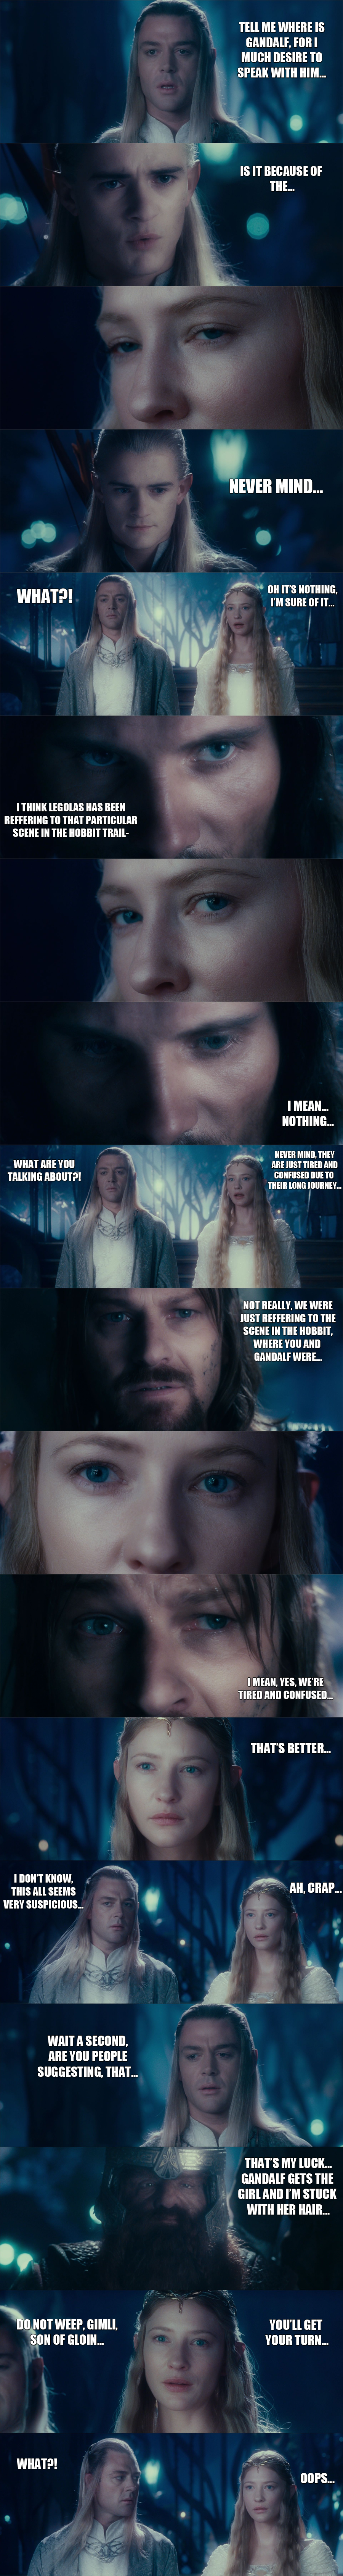 Homosexuality and LotR - Page 5 The_lord_of_the_rings___galadriel__s_secrets____by_yourparodies-d5kn4uq